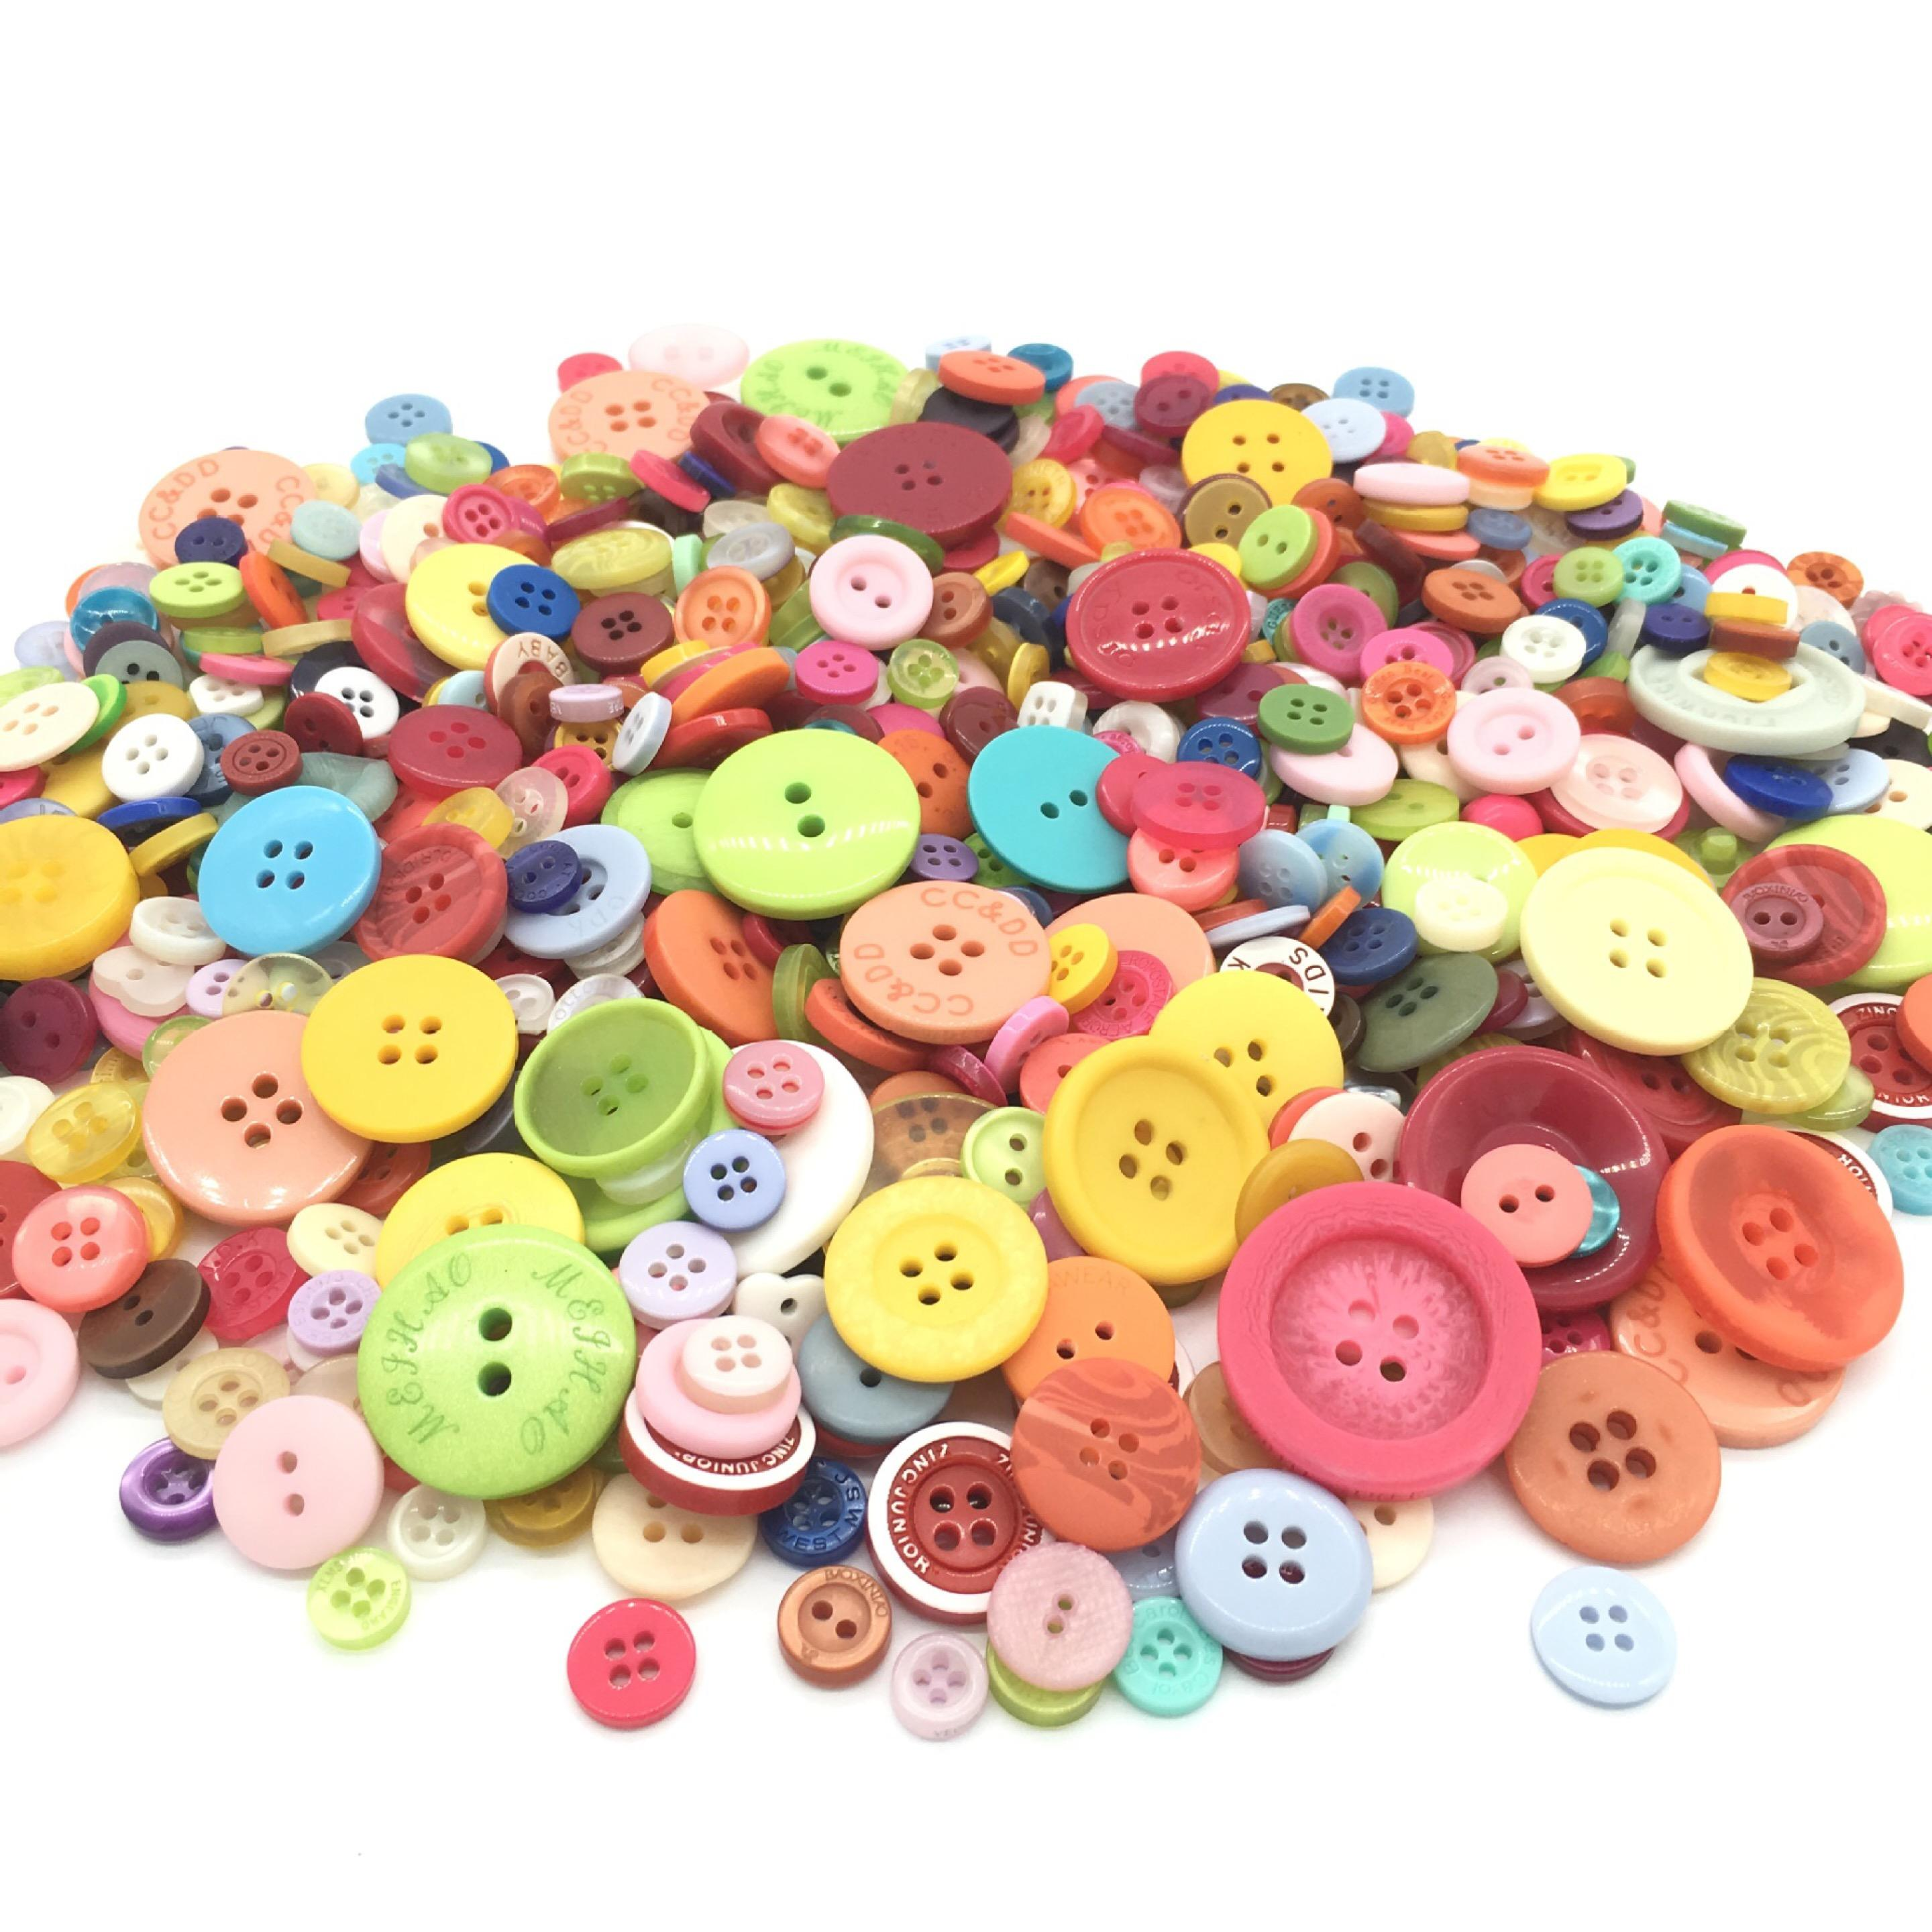 Wholesale Mixed color Multi Sizes 1-3cm DIY 4-Holes Resin Buttons Scrapbooking Apparel Decorative DIY Sewing Handmade Button